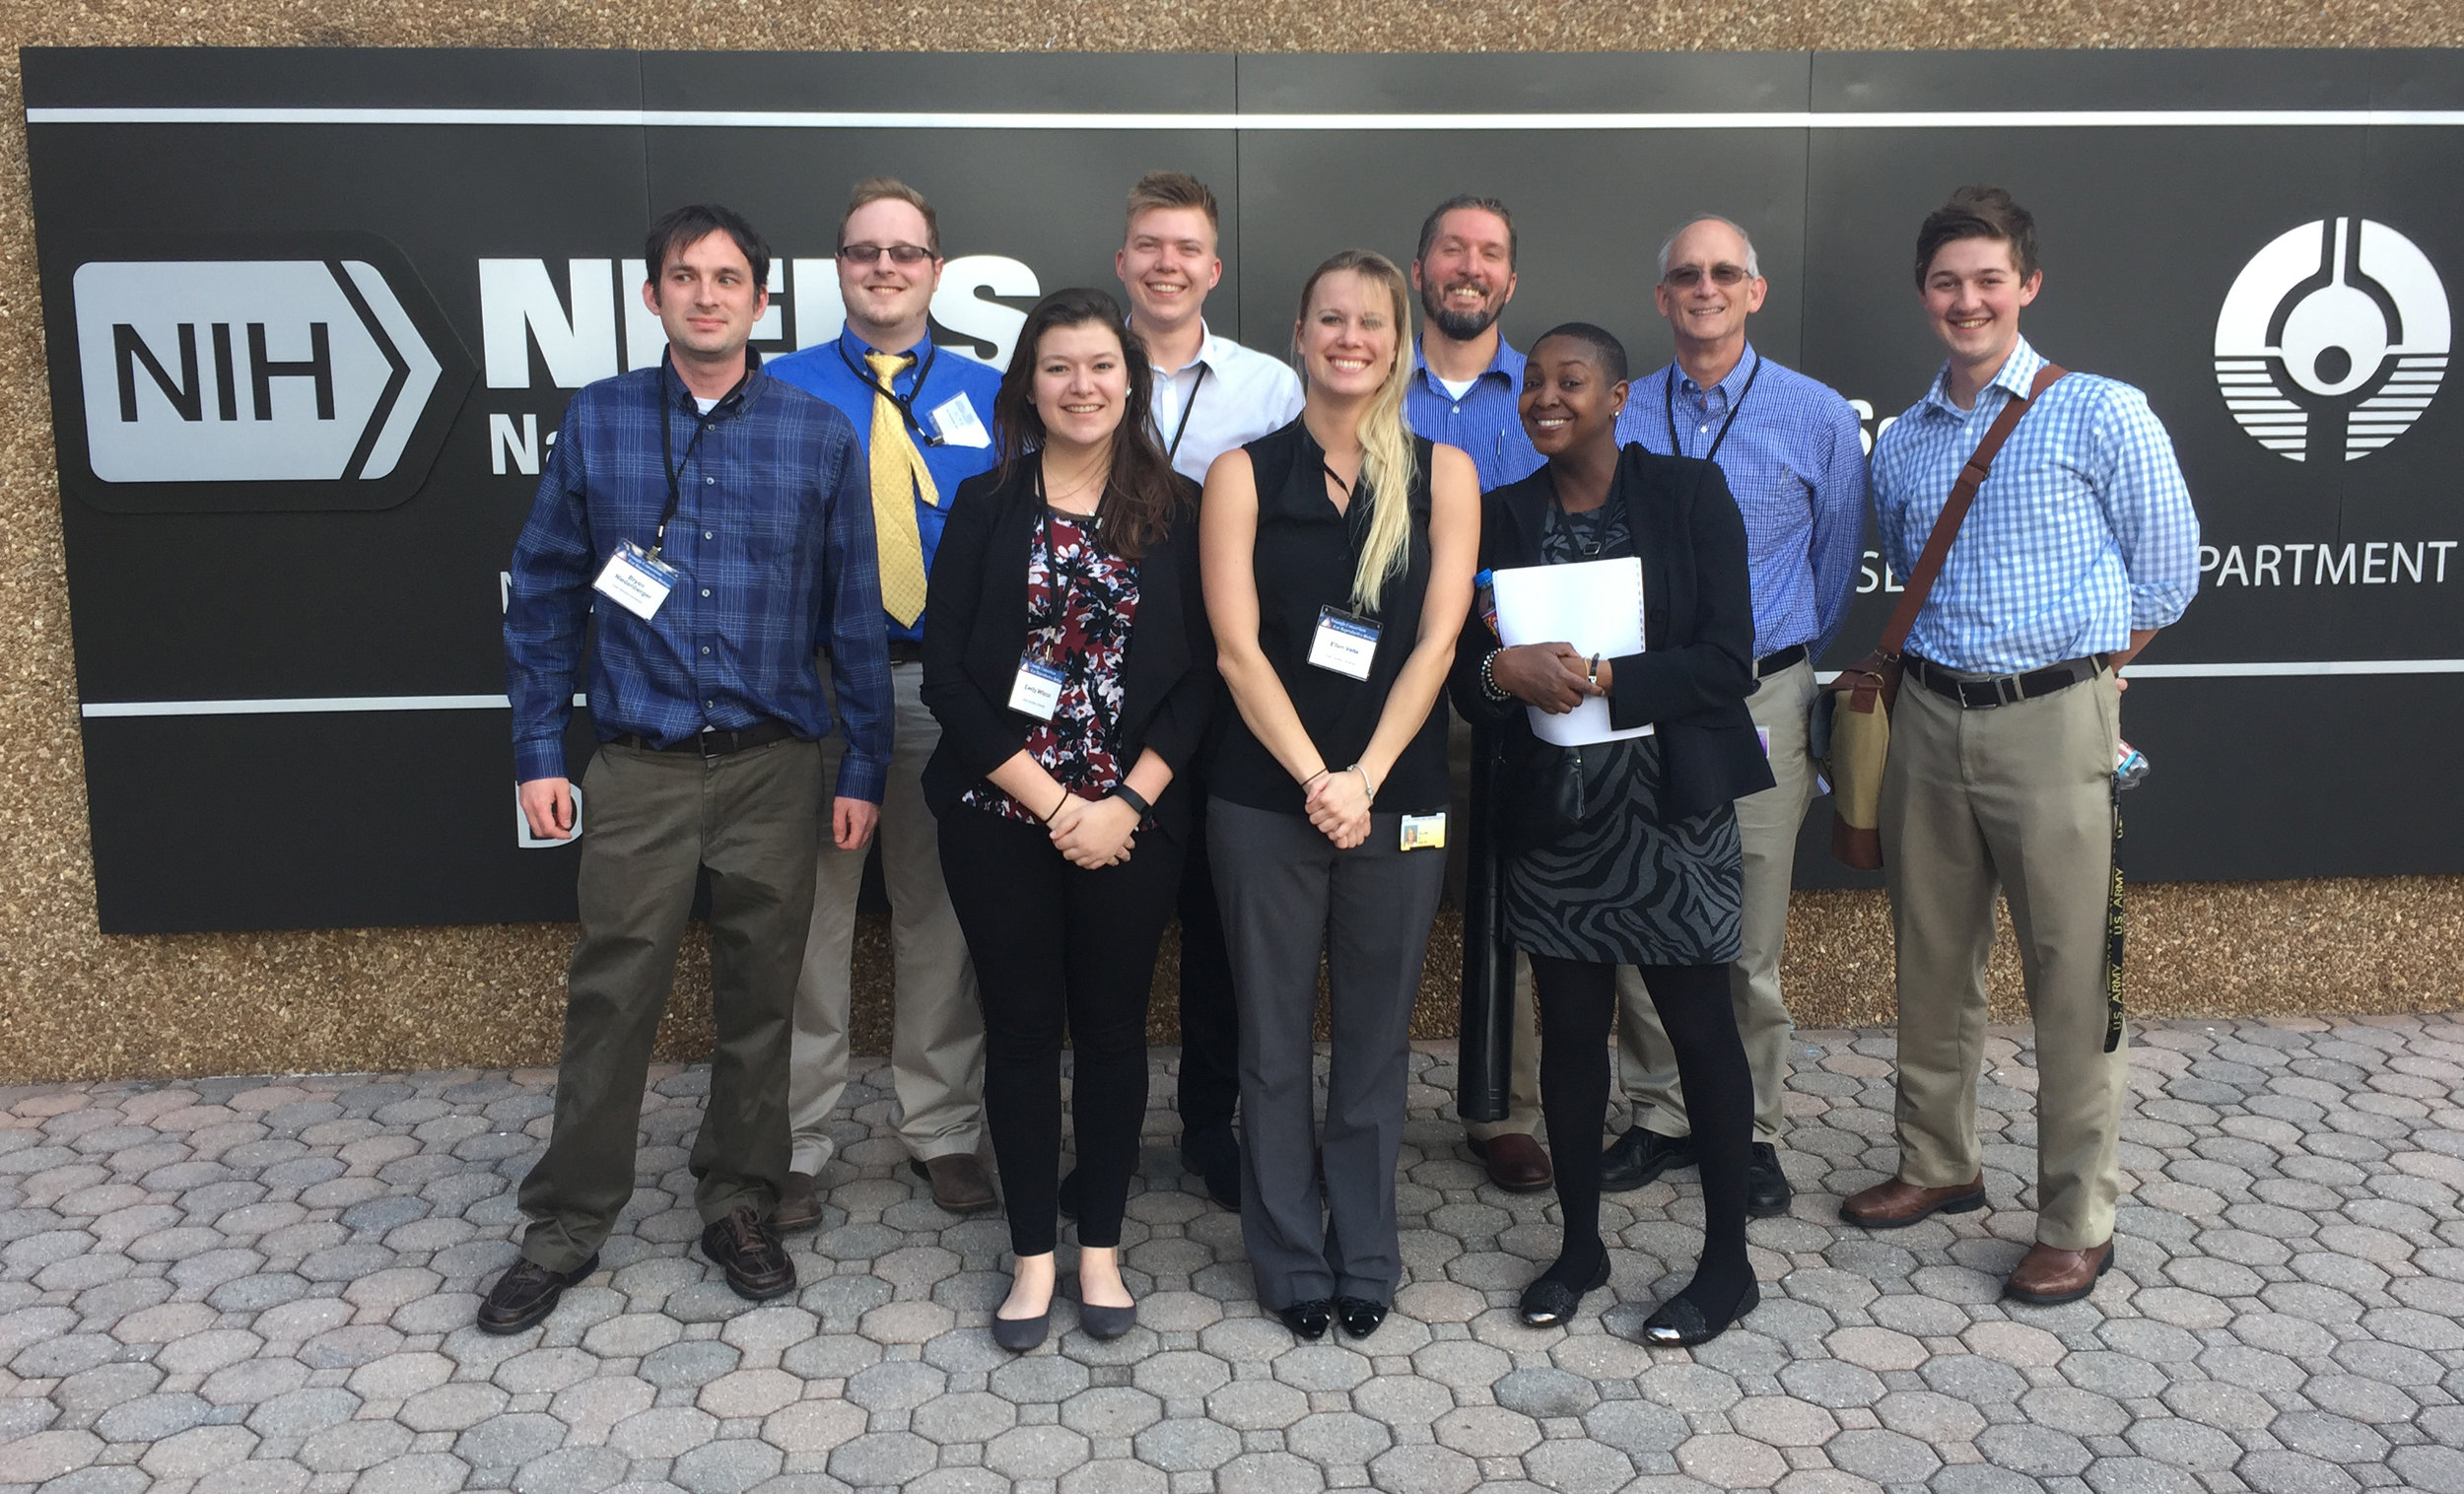 The Geyer lab and other scientists from ECU attended the 2017  Triangle Consortium for Reproductive Biology  (TCRB) meeting at the NIEHS. Pictured, from L-R: Bryan Niedenberger, Nick Serra, Emily Wilson, Sasha Kirsanov, Ellen Velte, Chris Geyer, Marquita Johnson, Randy Renegar, and Trey Cook.